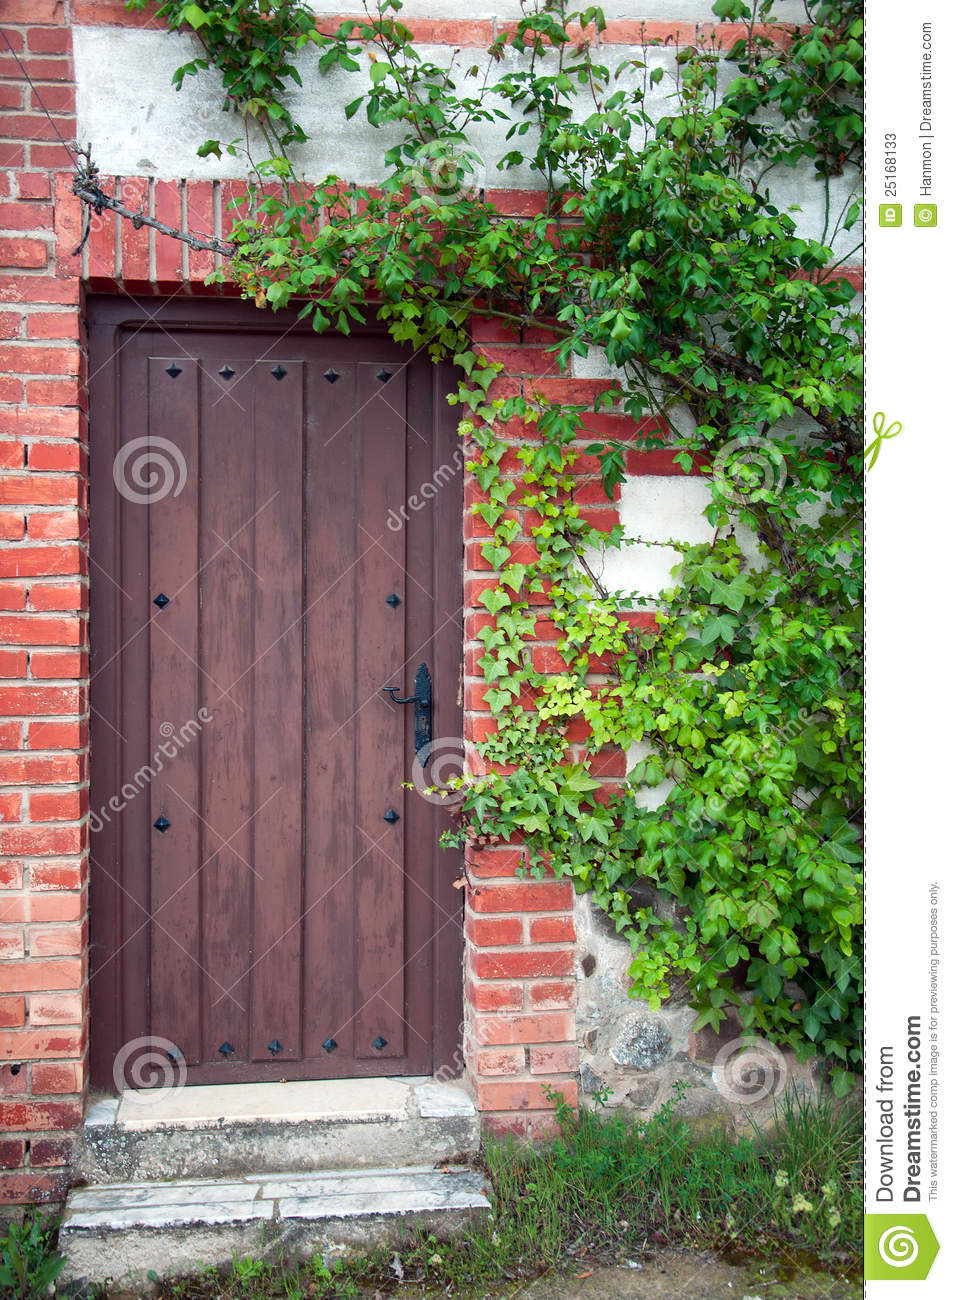 Old house with wooden door and green plants stock photos for Classic house plants